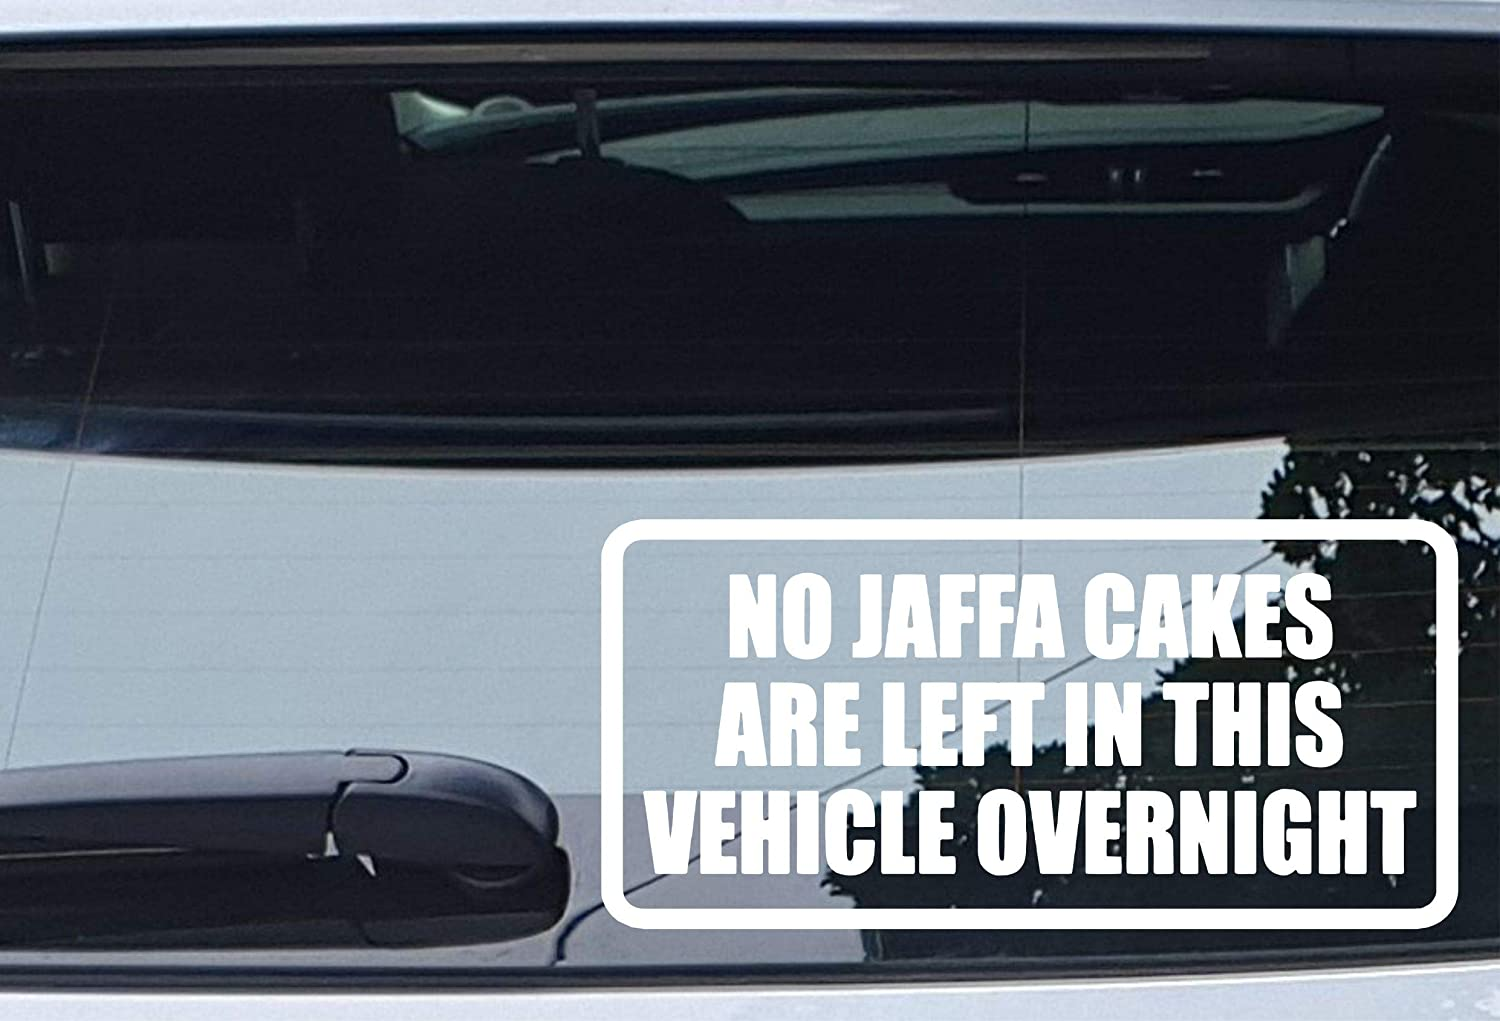 NO TOOLS LEFT IN VEHICLE OVERNIGHT DECAL STICKER CAR VAN BLACK OR ANY COLOUR